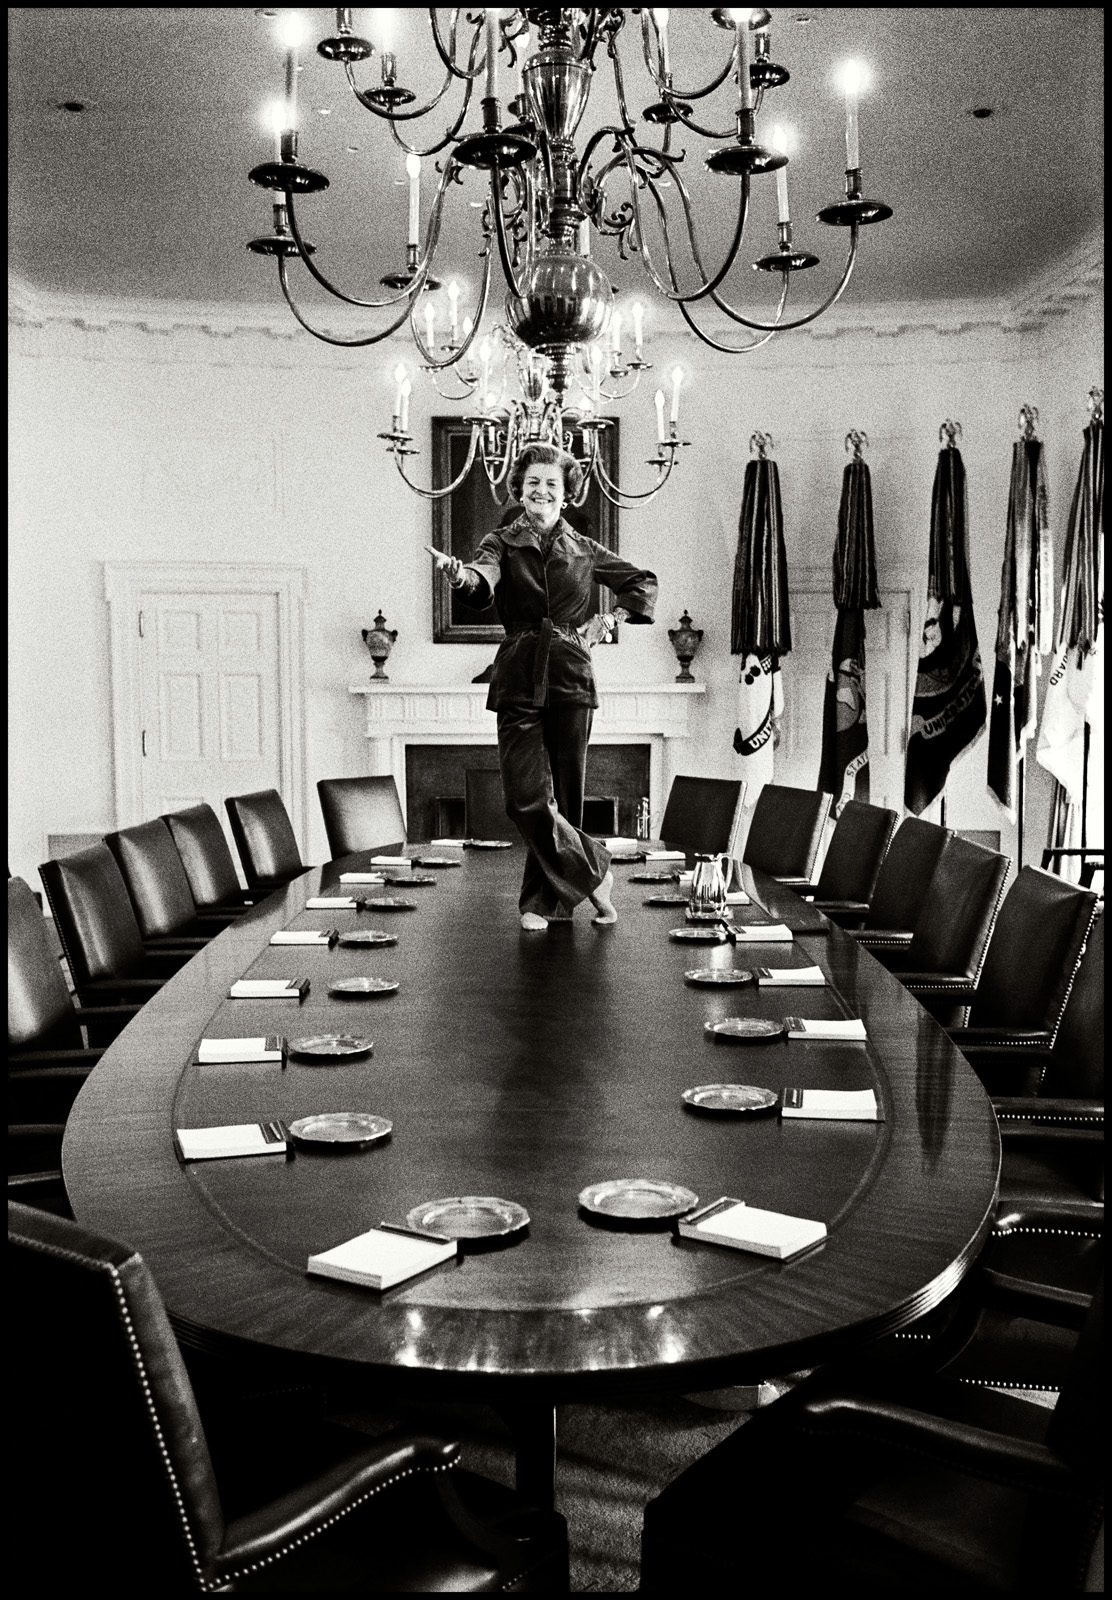 First Lady Betty Ford strikes a playful pose on the Cabinet Room table, January 19, 1977, the day before leaving the White House in Washington D.C. (Photo by David Hume Kennerly)